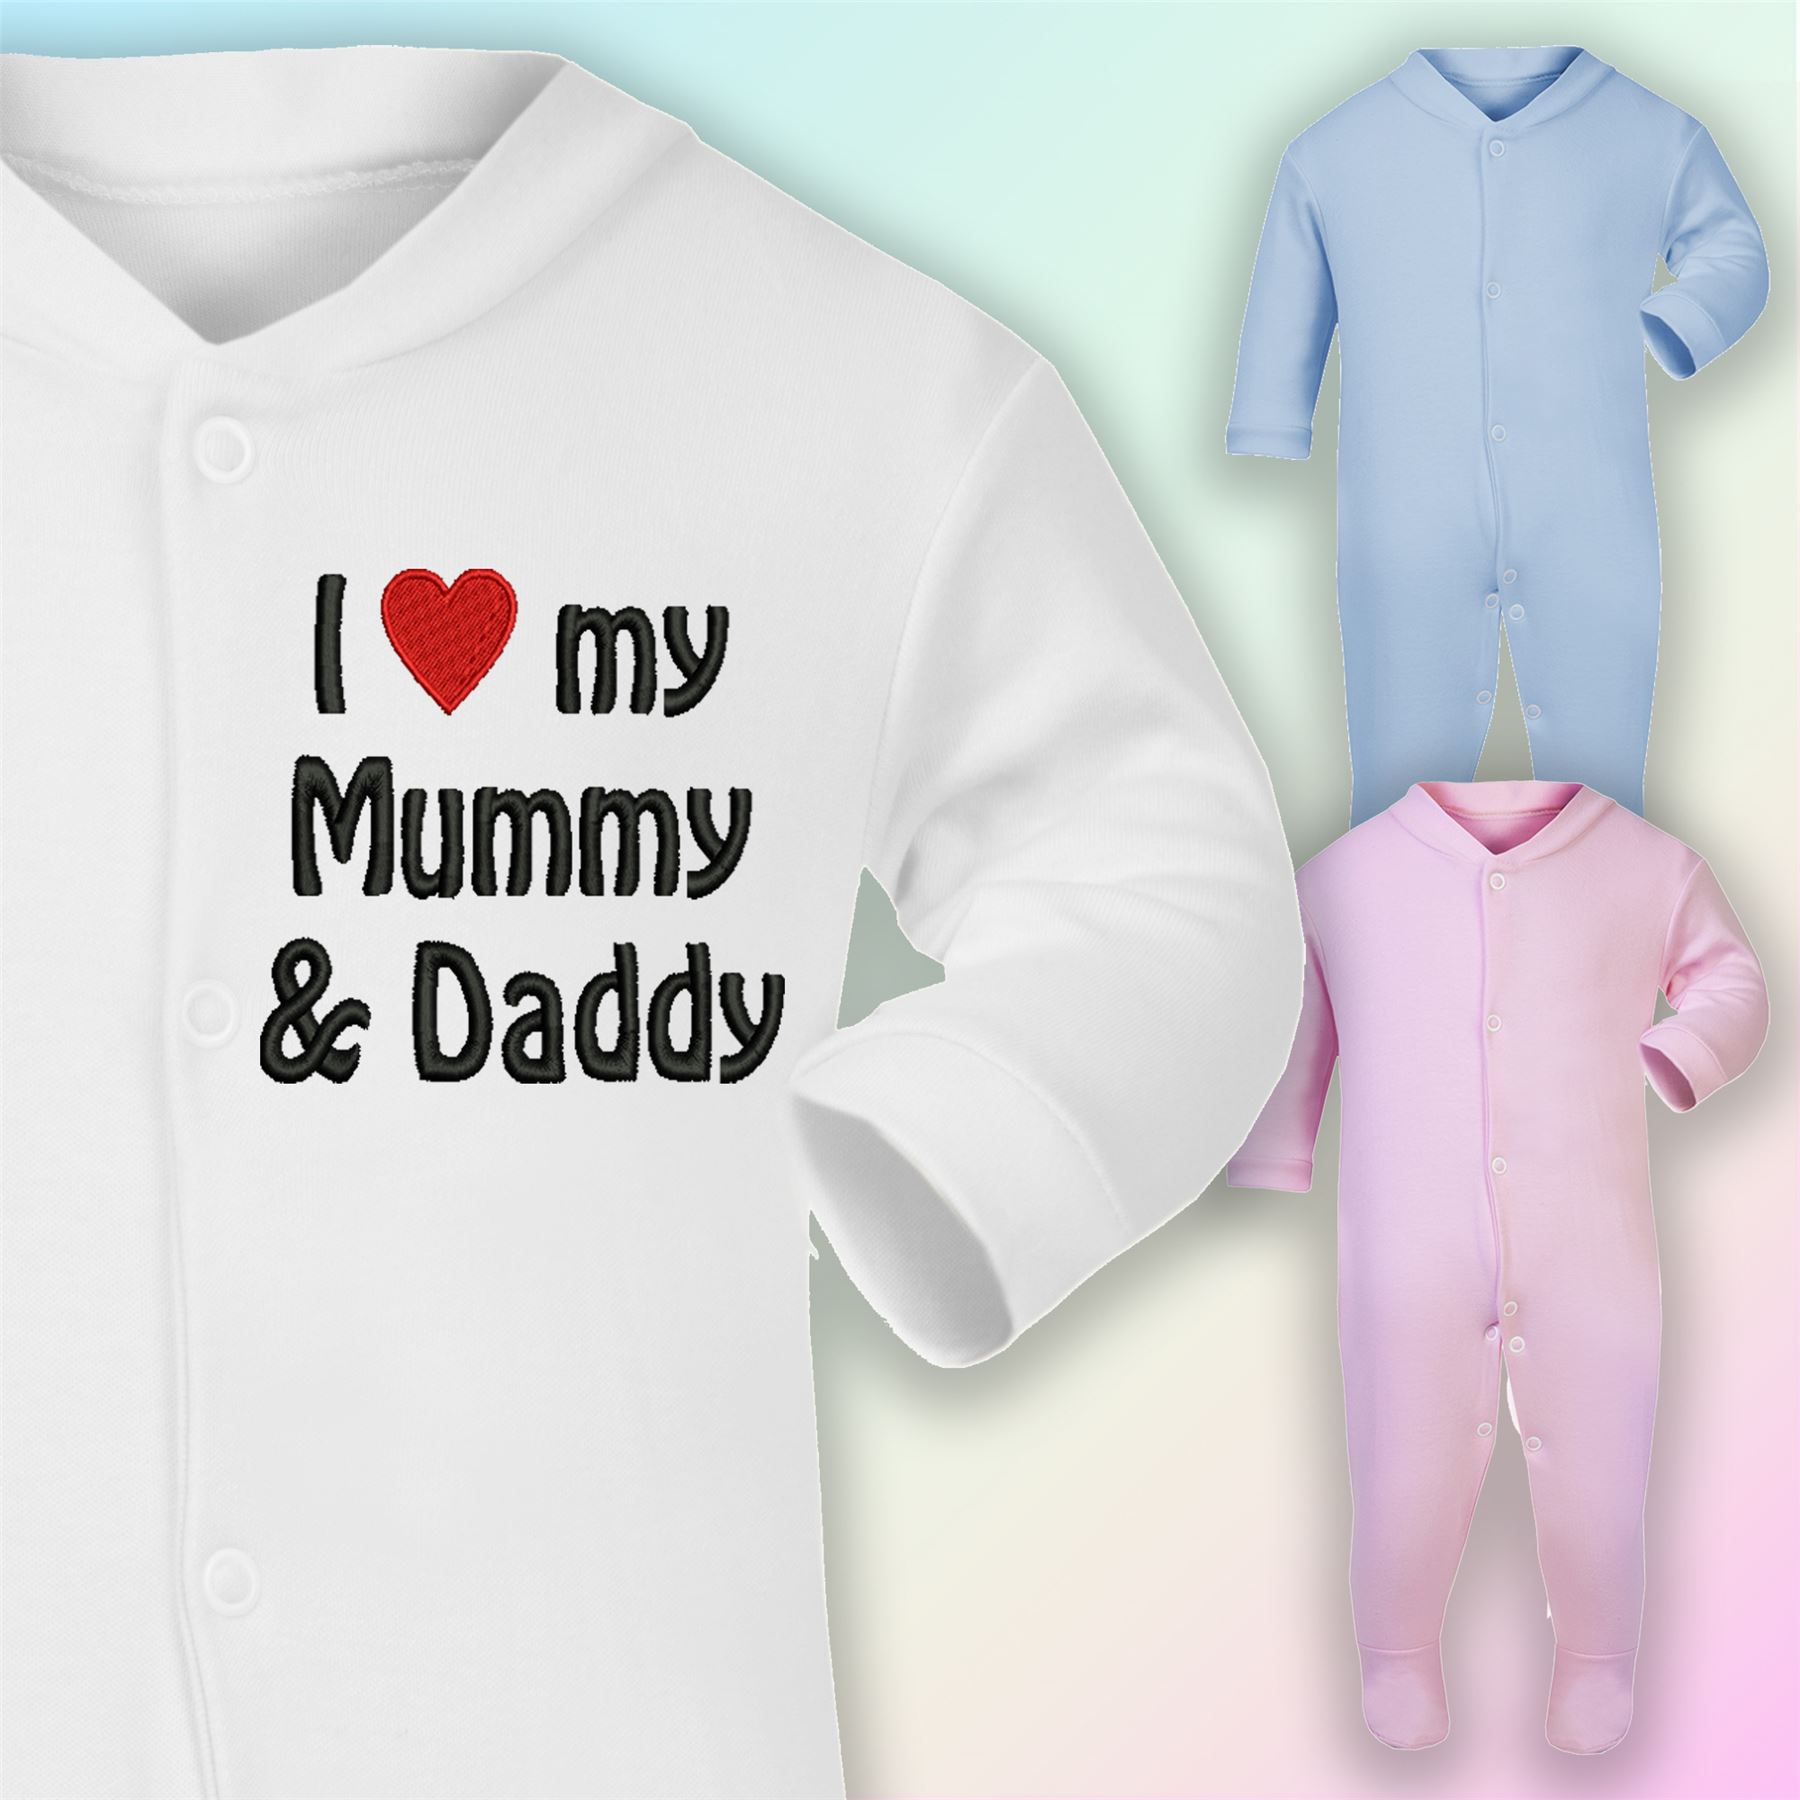 Custom Giftware UK Mummy /& Daddys Miracle Baby//Toddler T Shirt Size 3-6 Months White can be Personalised